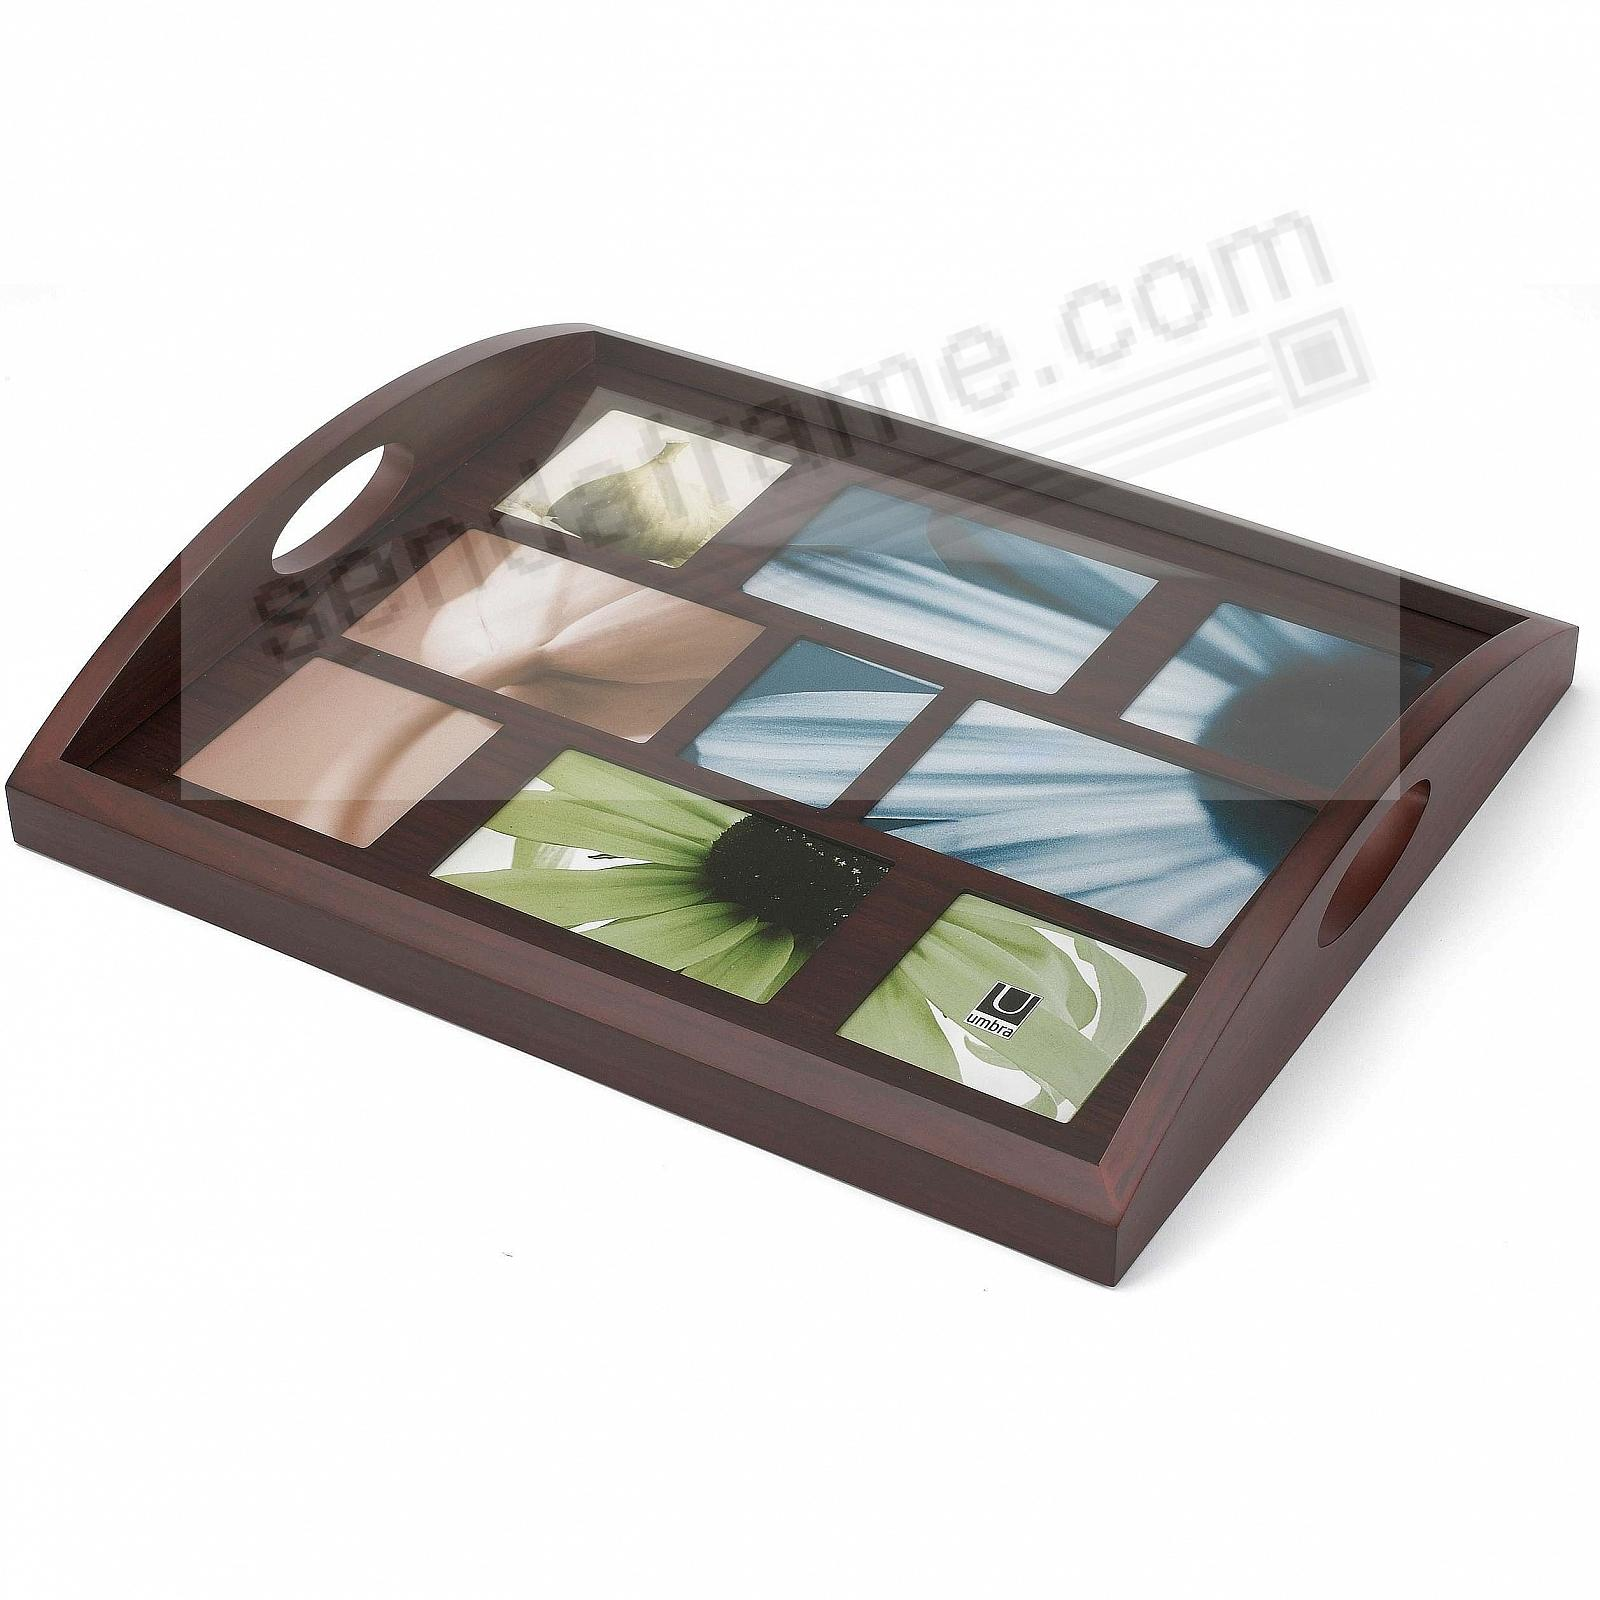 Host Serving Tray By Umbra In Espresso Grain Wood